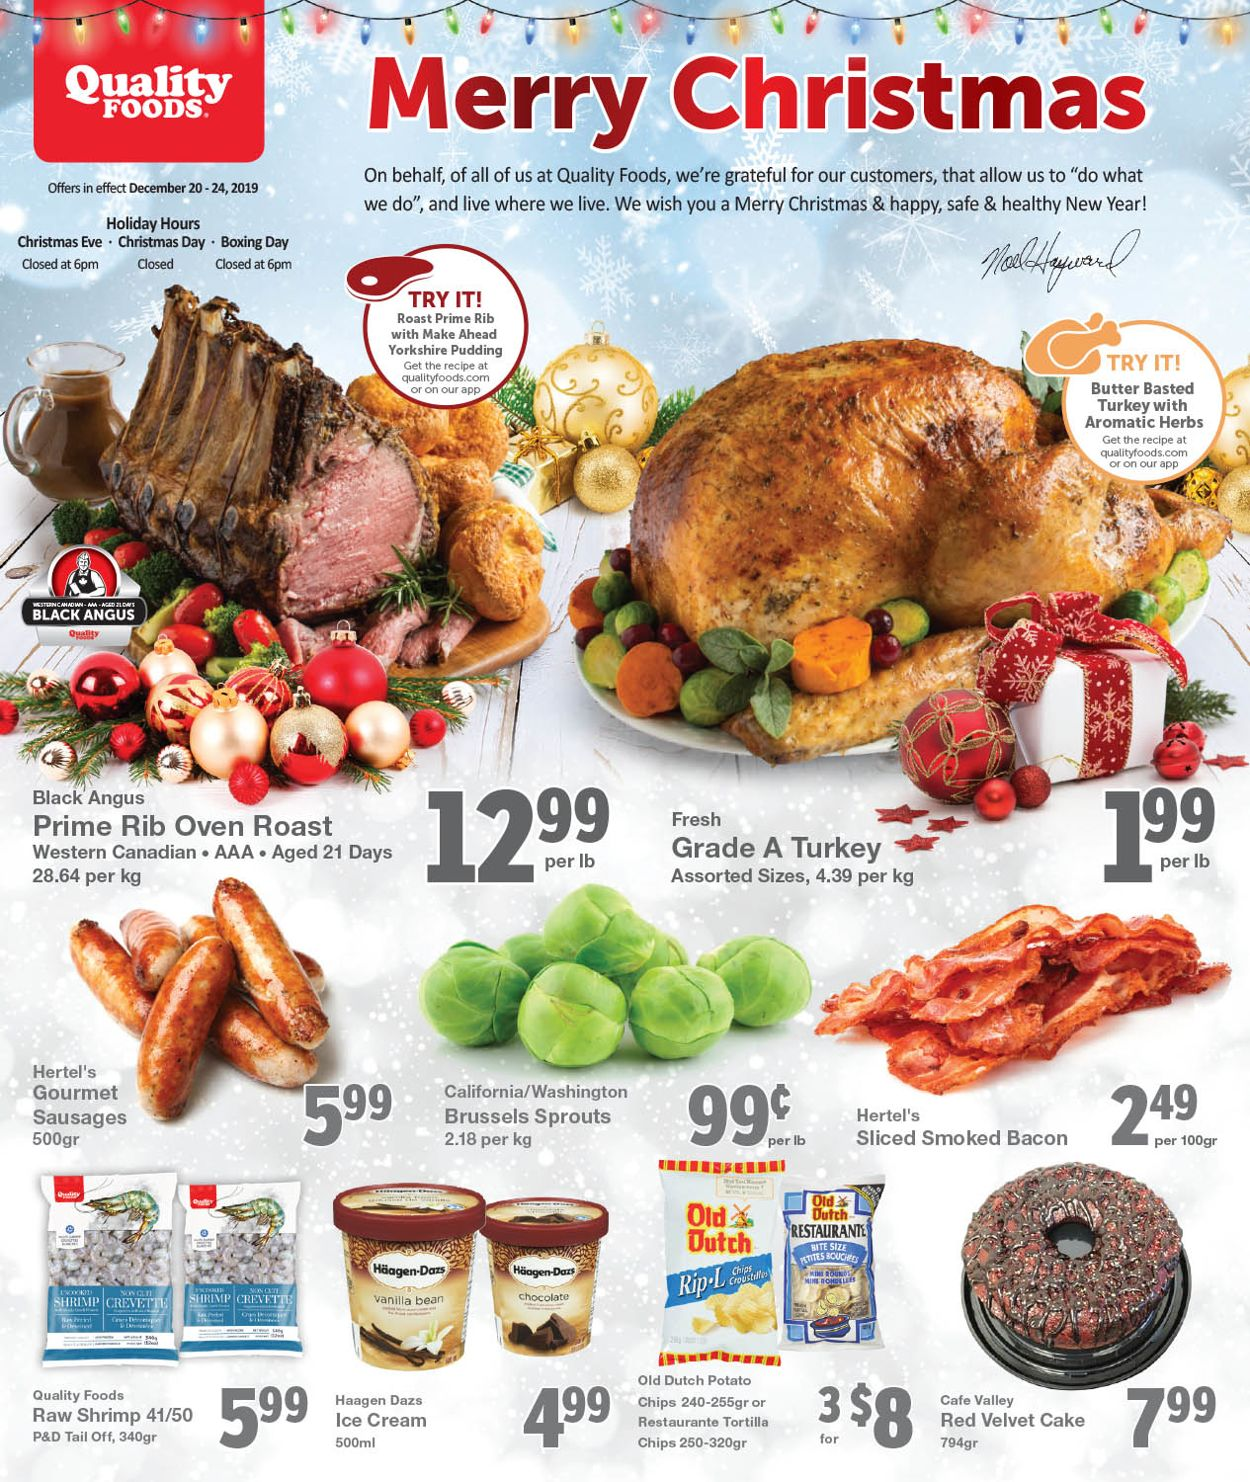 Quality Foods - Christmas 2019 Flyer Flyer - 12/20-12/24/2019